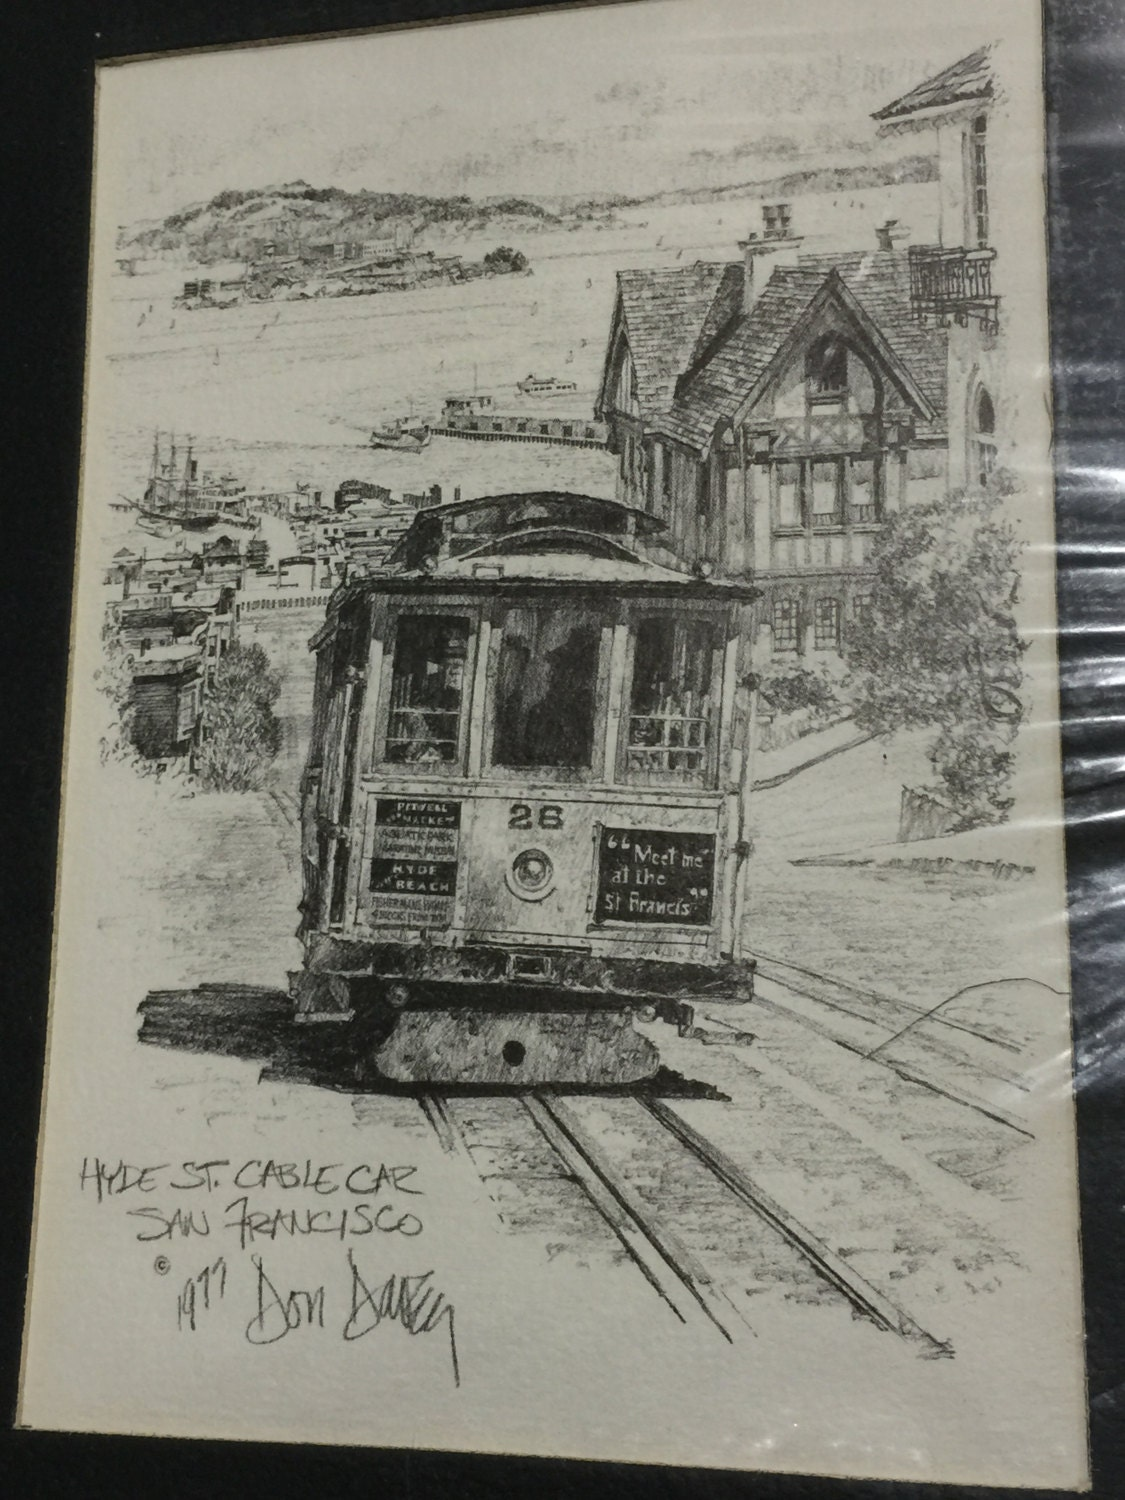 1977 Don Davey Hyde Street Cable Car San Francisco Matted